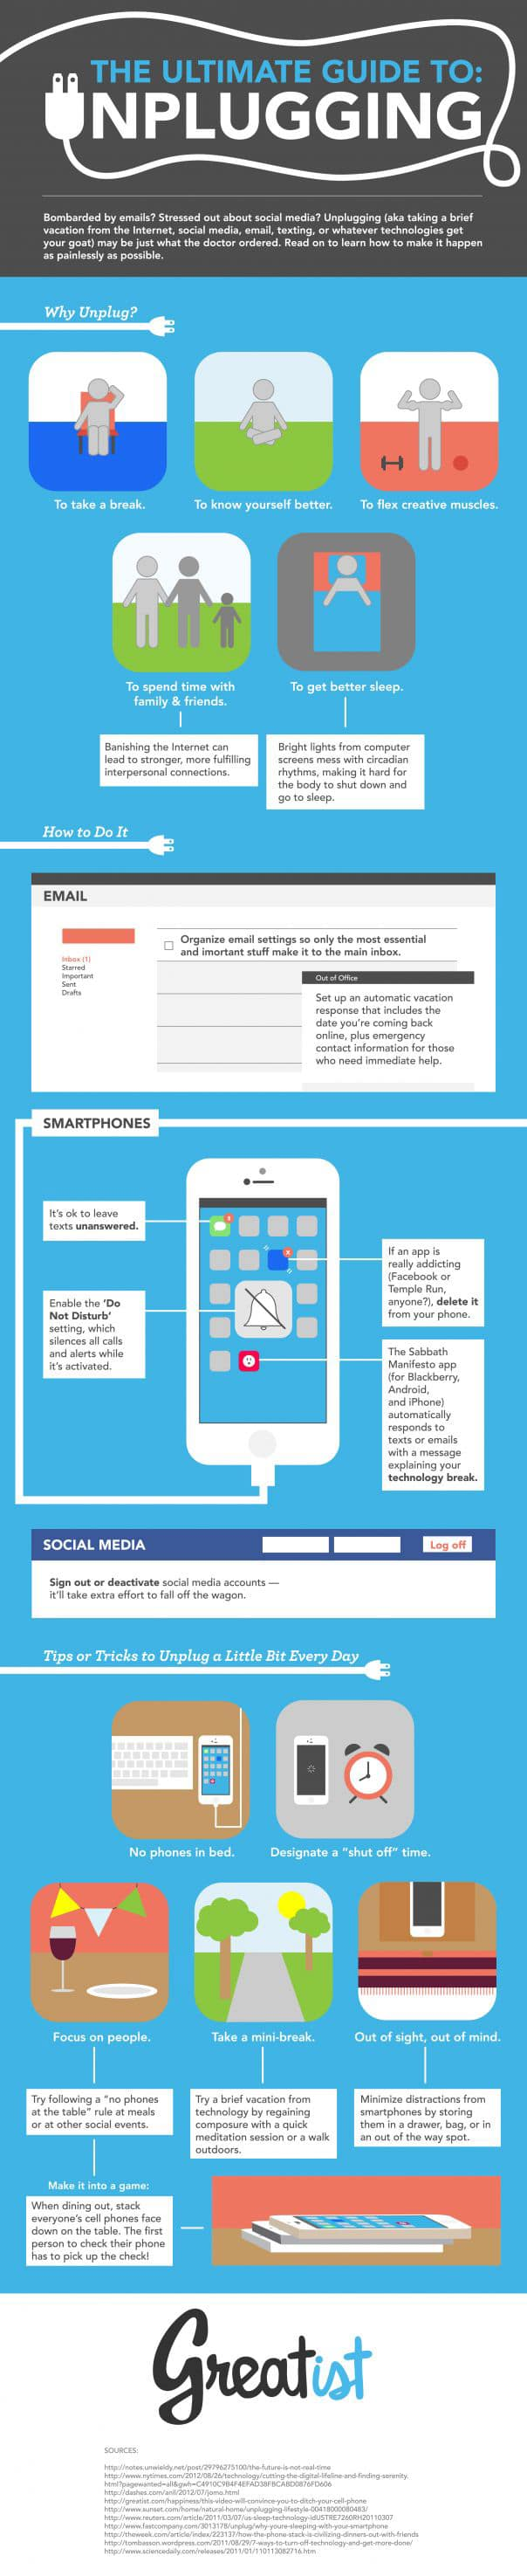 ultimate-guide-to-unplugging-infographic